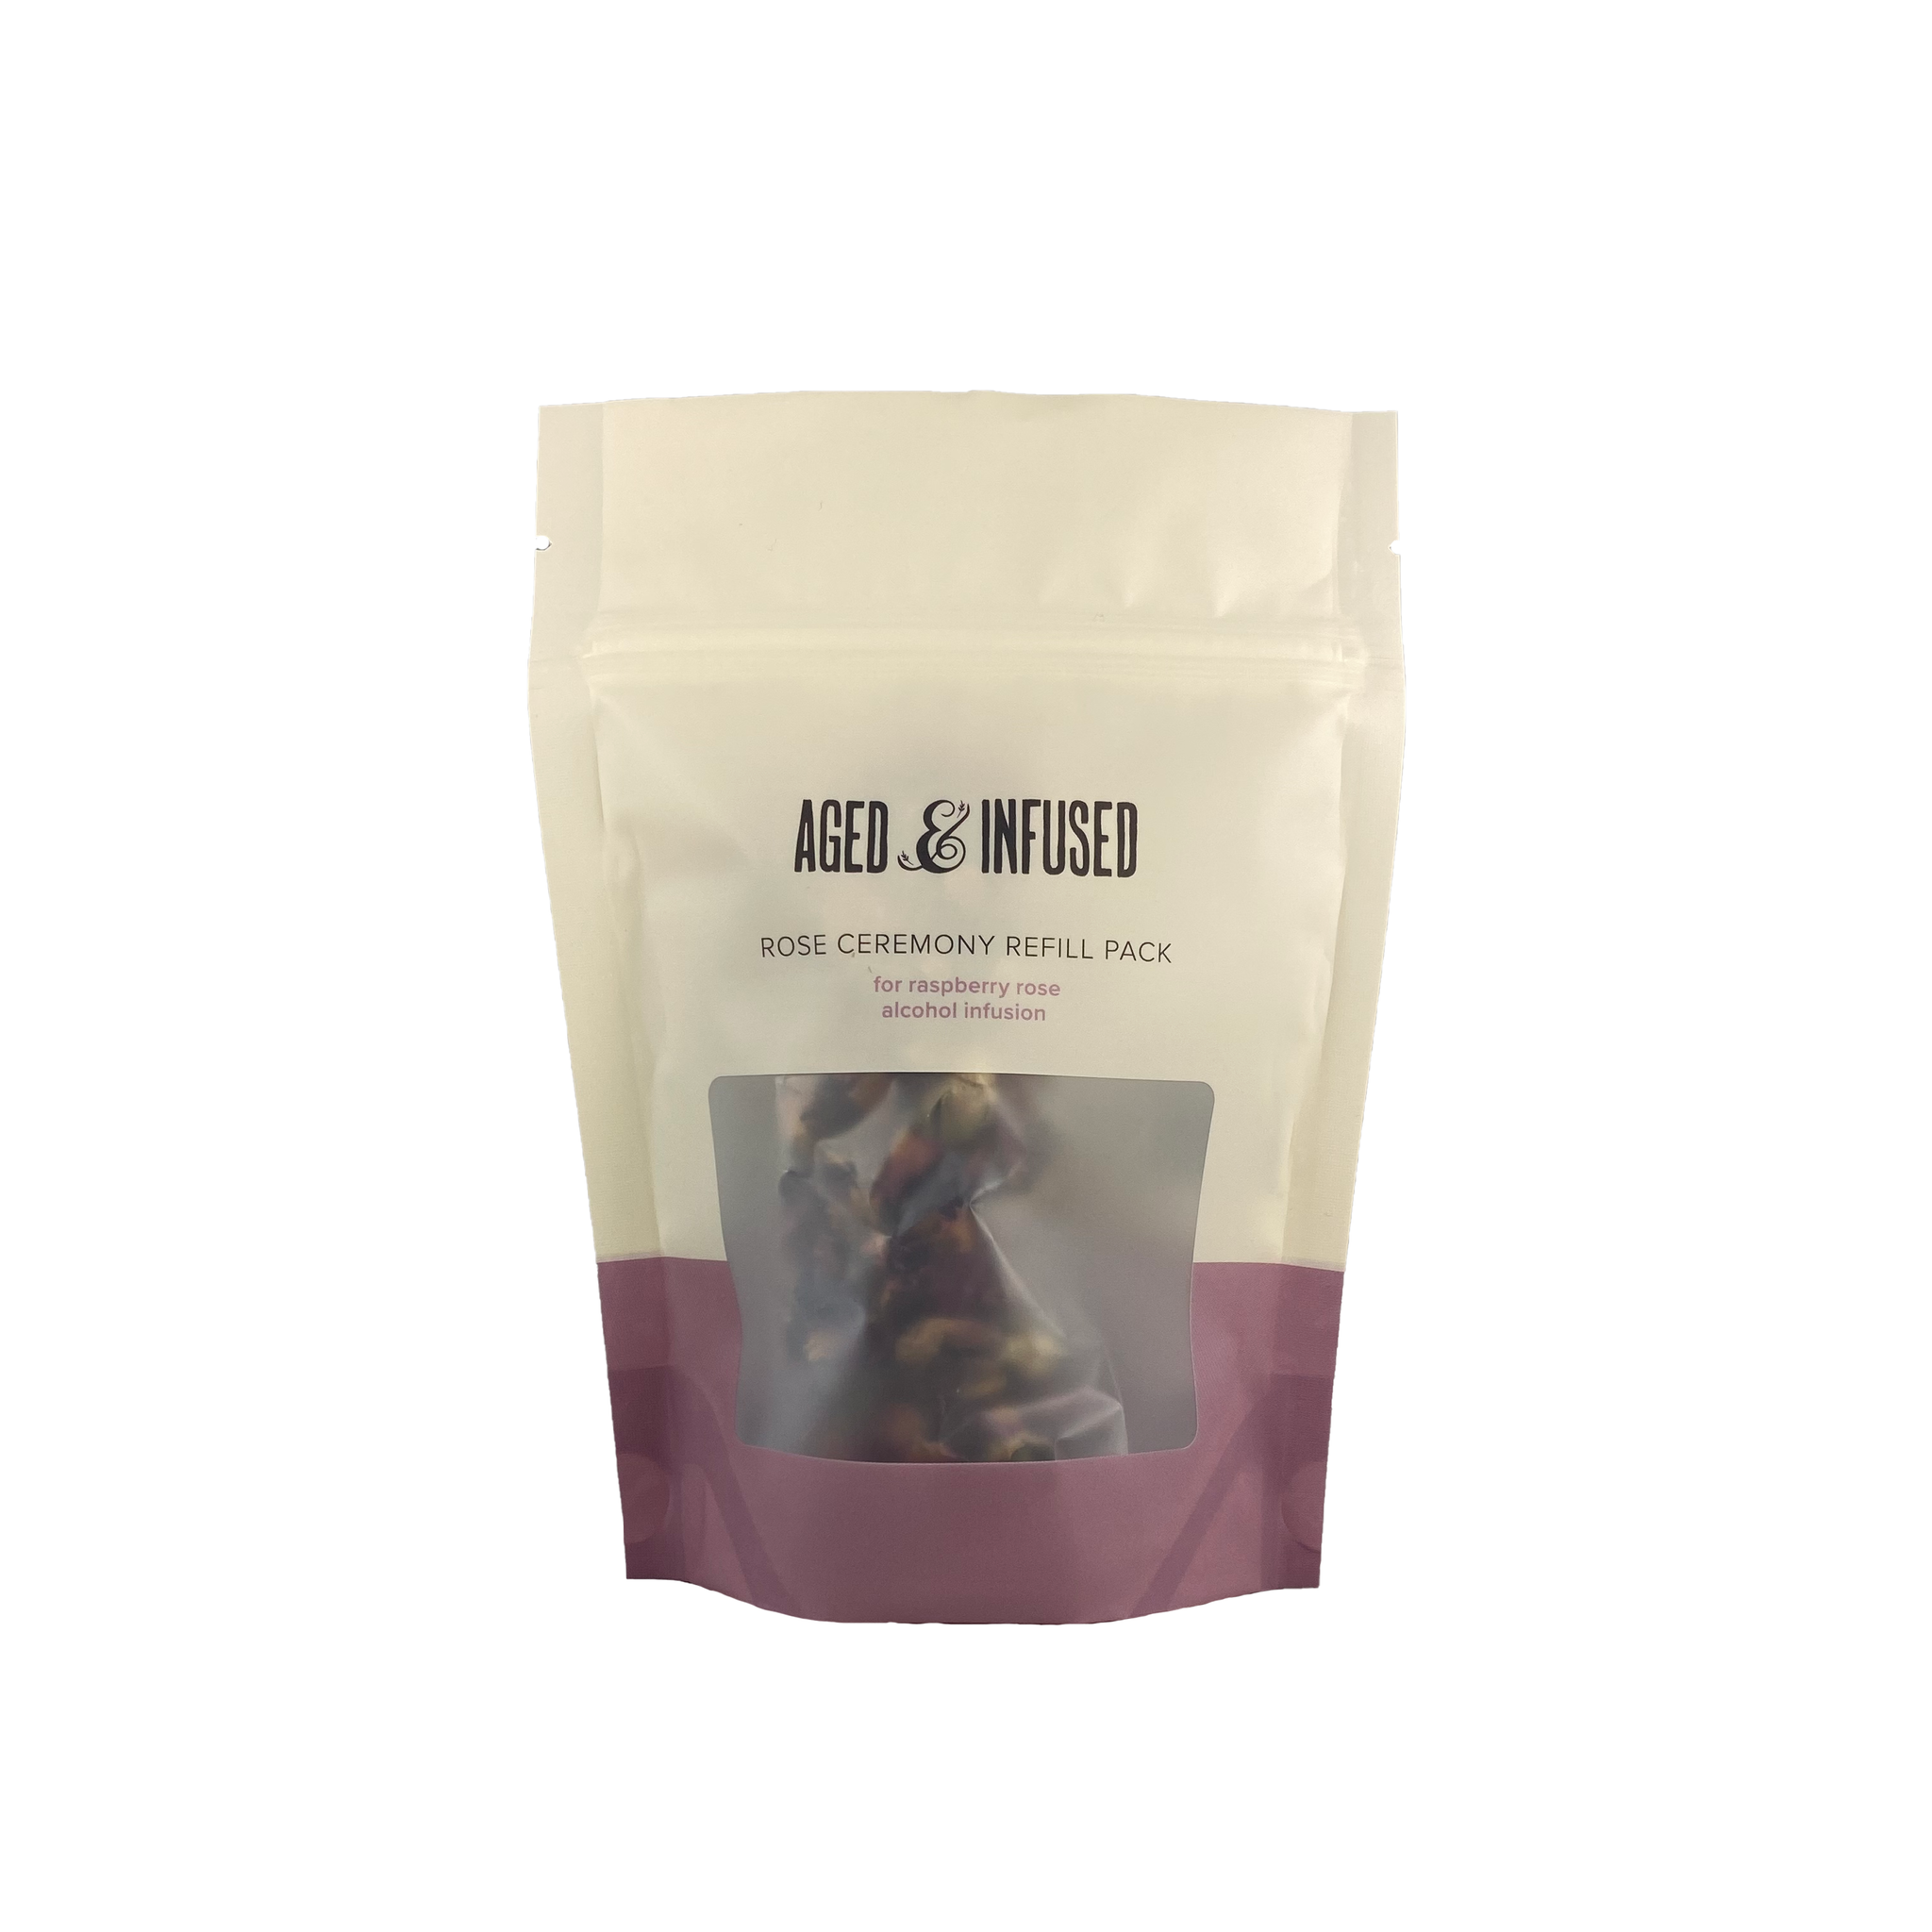 Rose Ceremony Refill Pack